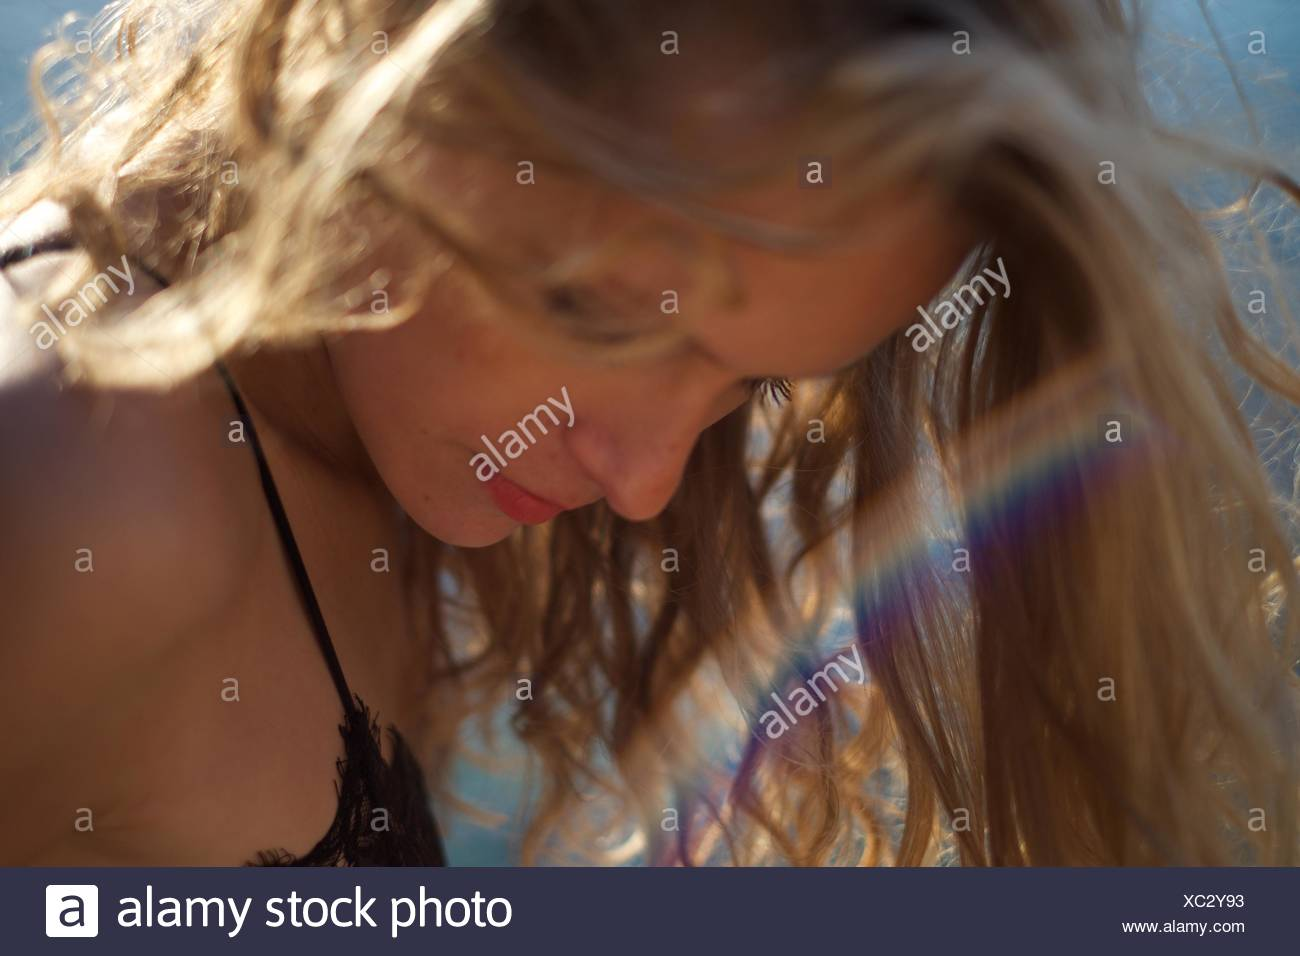 Woman looking down with beam of rainbow light - Stock Image